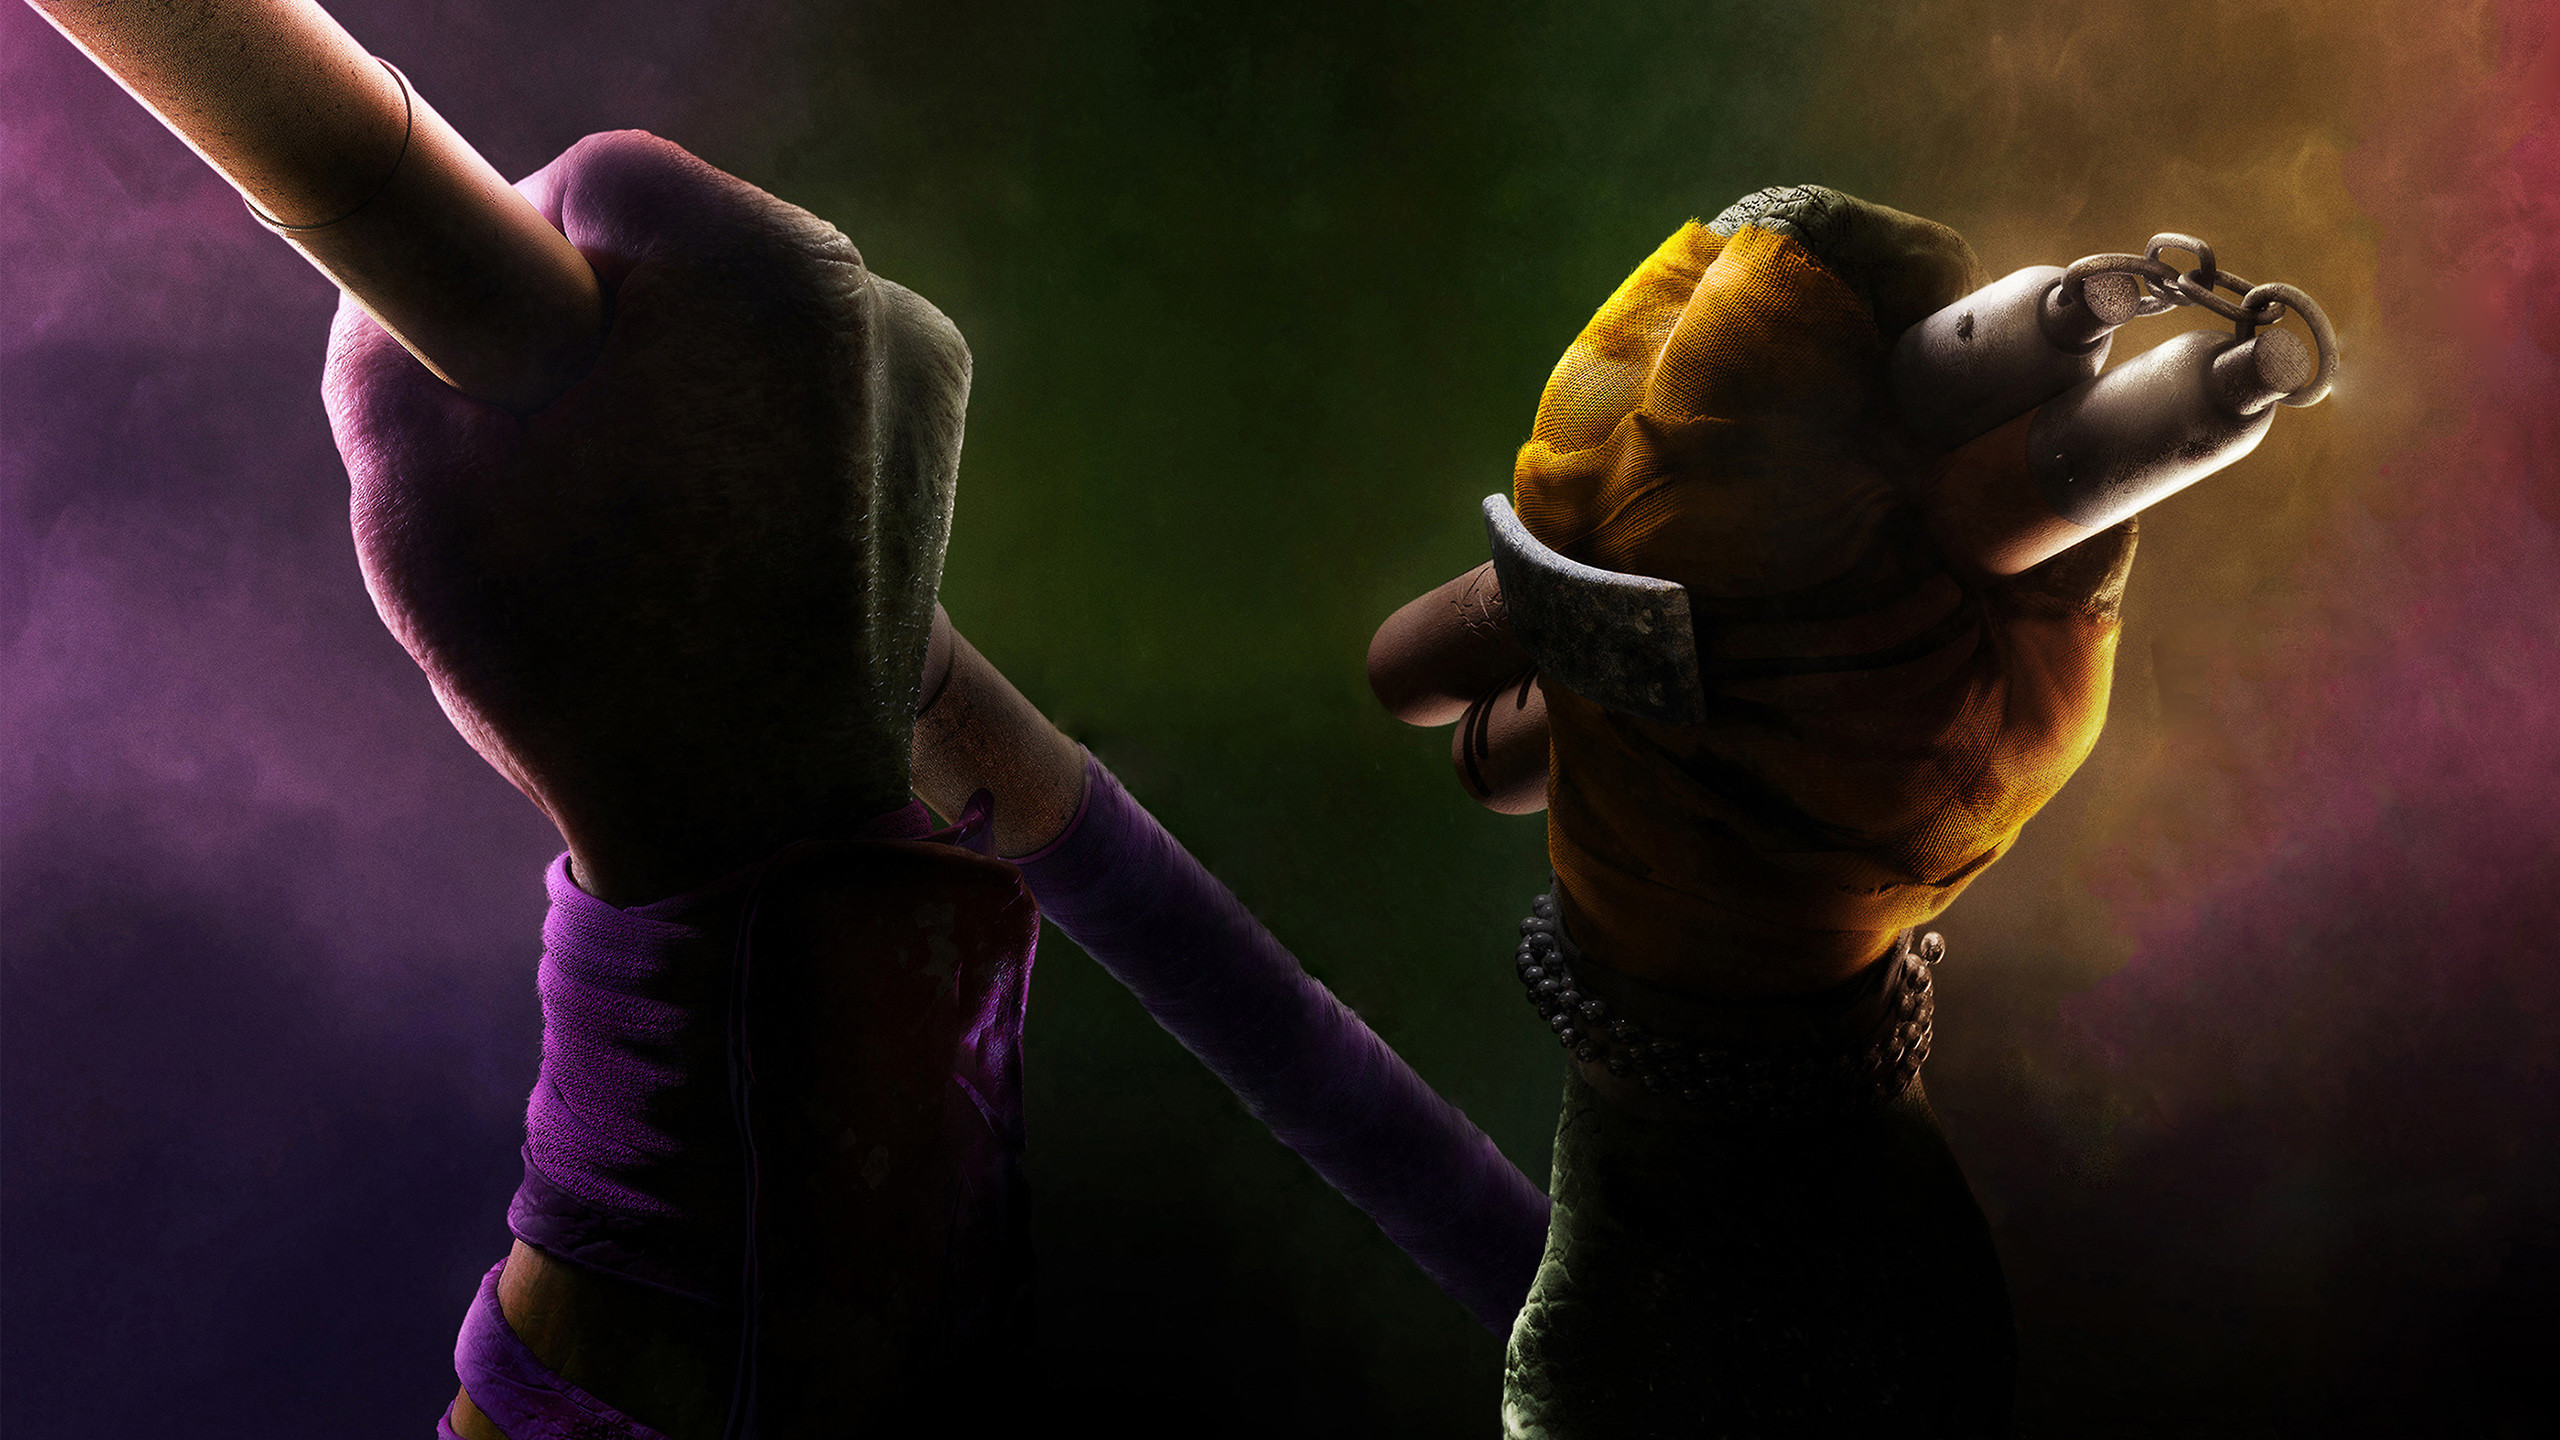 Tmnt 2018 Wallpapers 71 Pictures